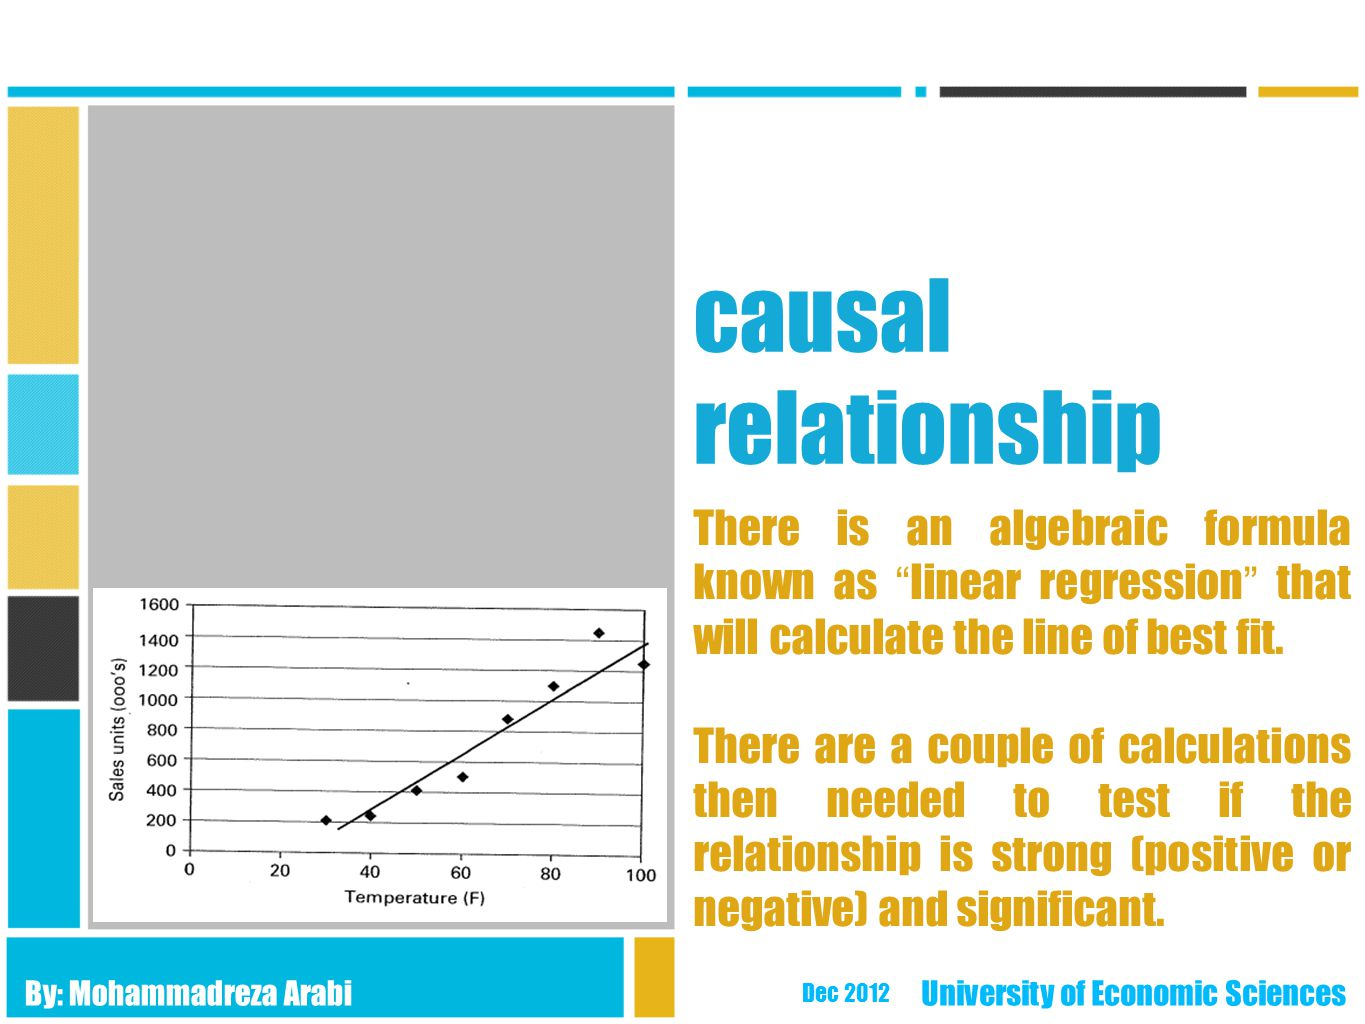 causal relationship There is an algebraic formula known as linear regression that will calculate the line of best fit.